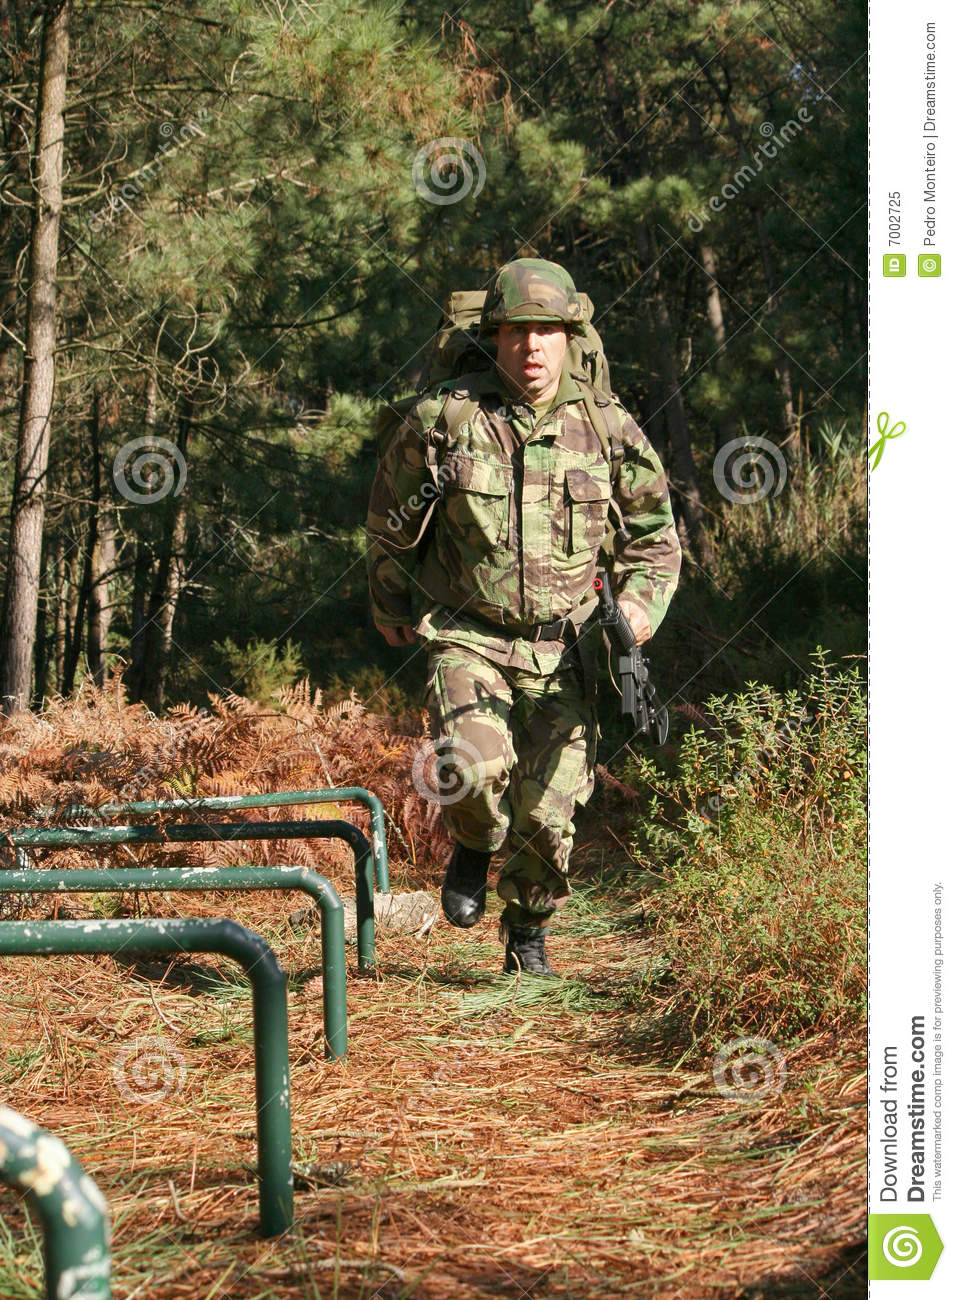 Military physical training